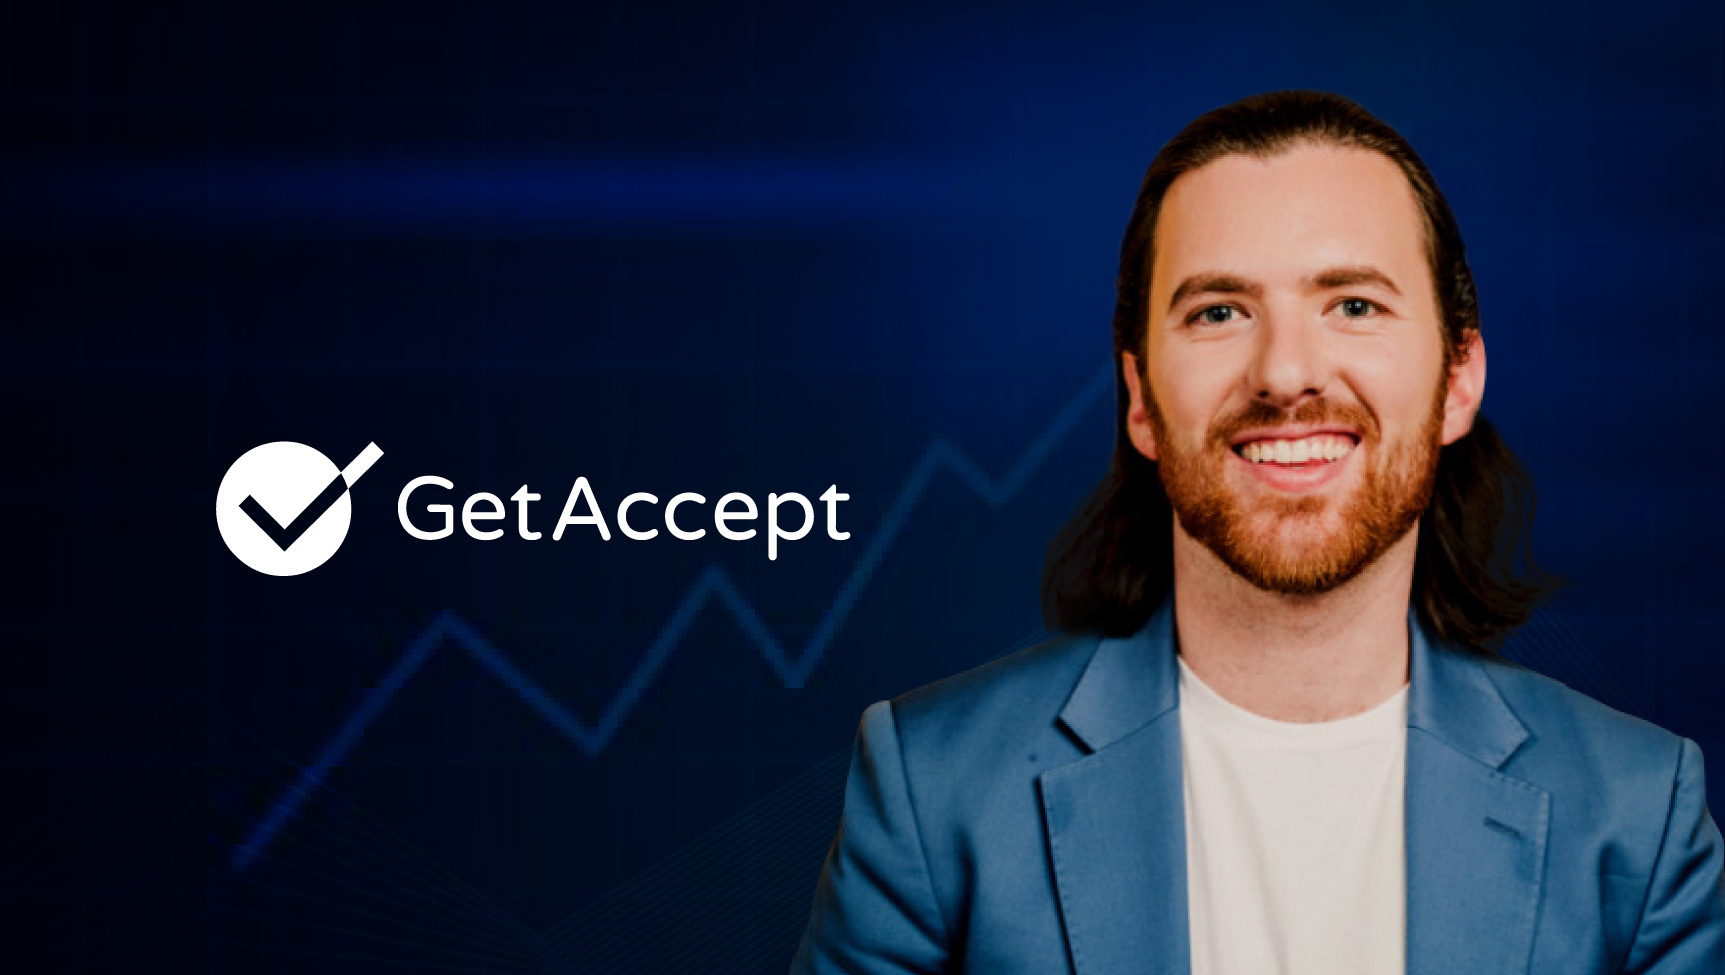 SalesTech Star Interview with Dailius Wilson, VP of Sales and Growth Marketing at GetAccept